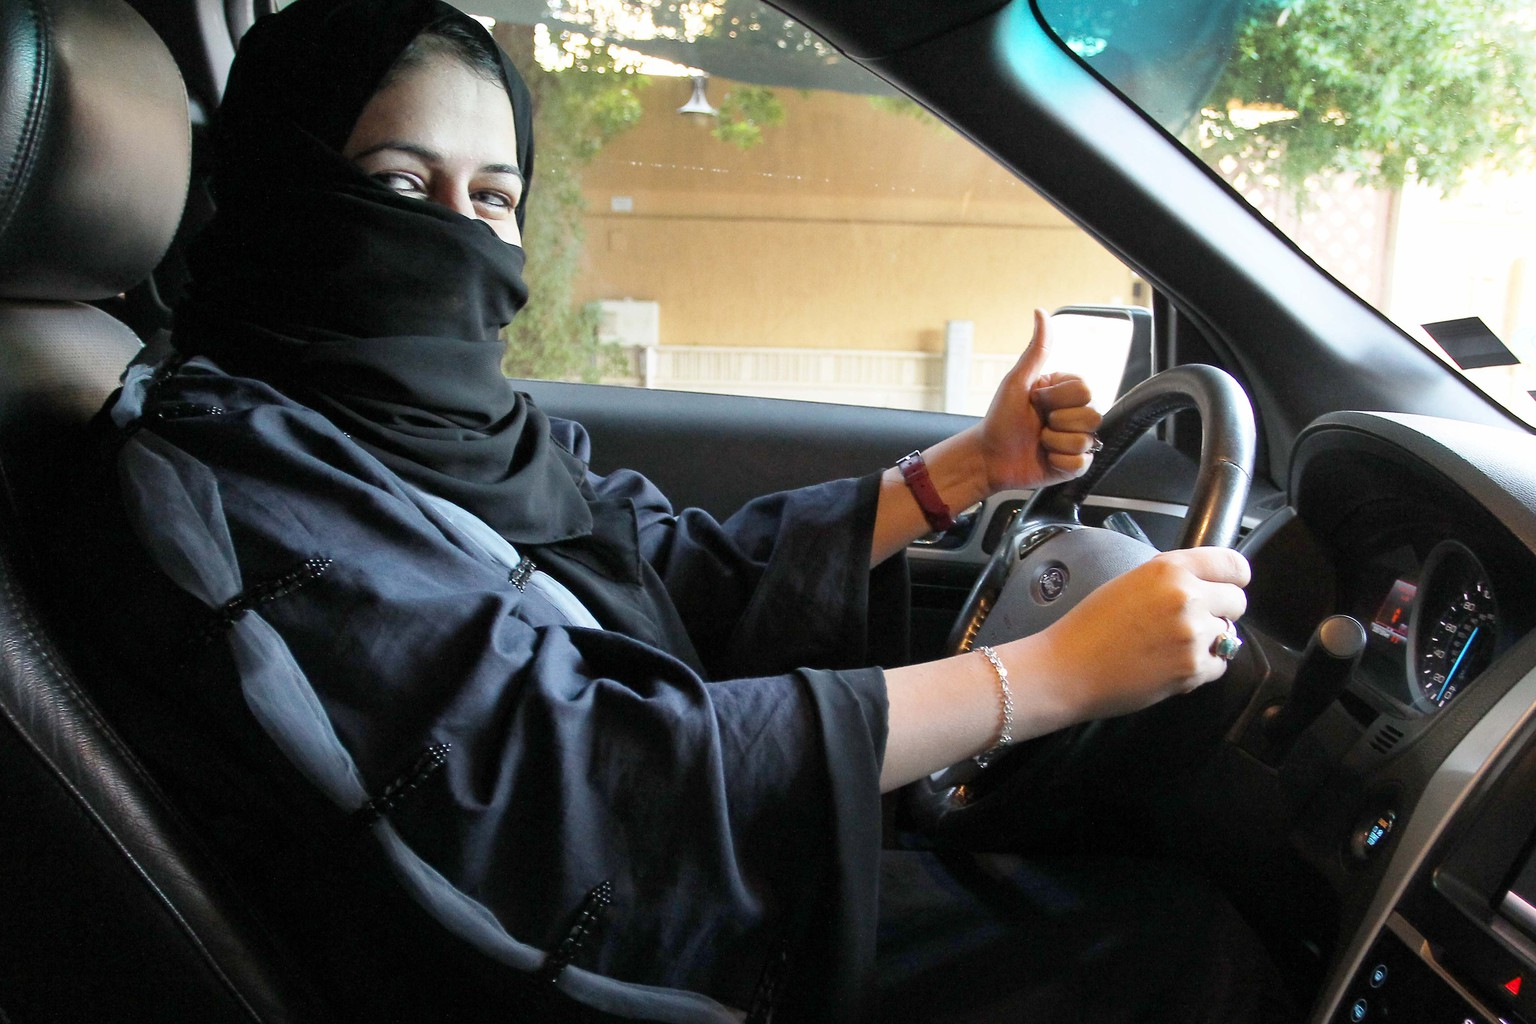 epa06230465 A woman gives a thumb up as she sits behind the wheel of a car in Riyadh, Saudi Arabia, 27 September 2017. According to reports on 26 September 2017, Saudi Arabia's King Salman bin Abdulaziz Al Saud has issued a decree that will allow women to drive and which is to be implemented by June 2018. Saudi Arabia was the world's only country where women were not allowed to drive.  EPA/STR